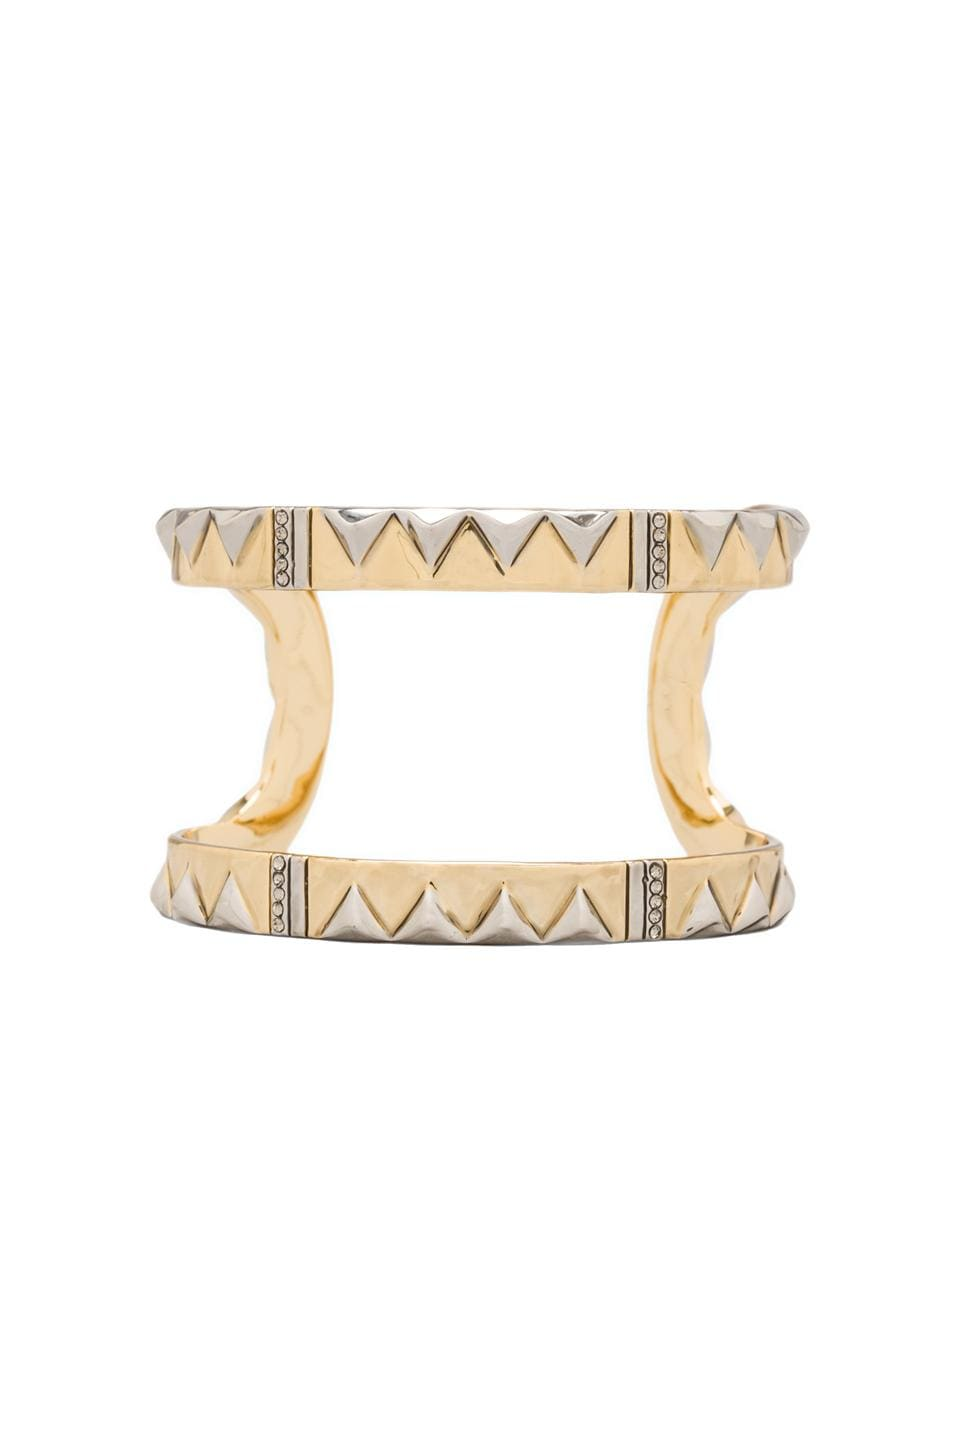 House of Harlow 1960 House of Harlow Cusco Crescent Cuff in Two Tone